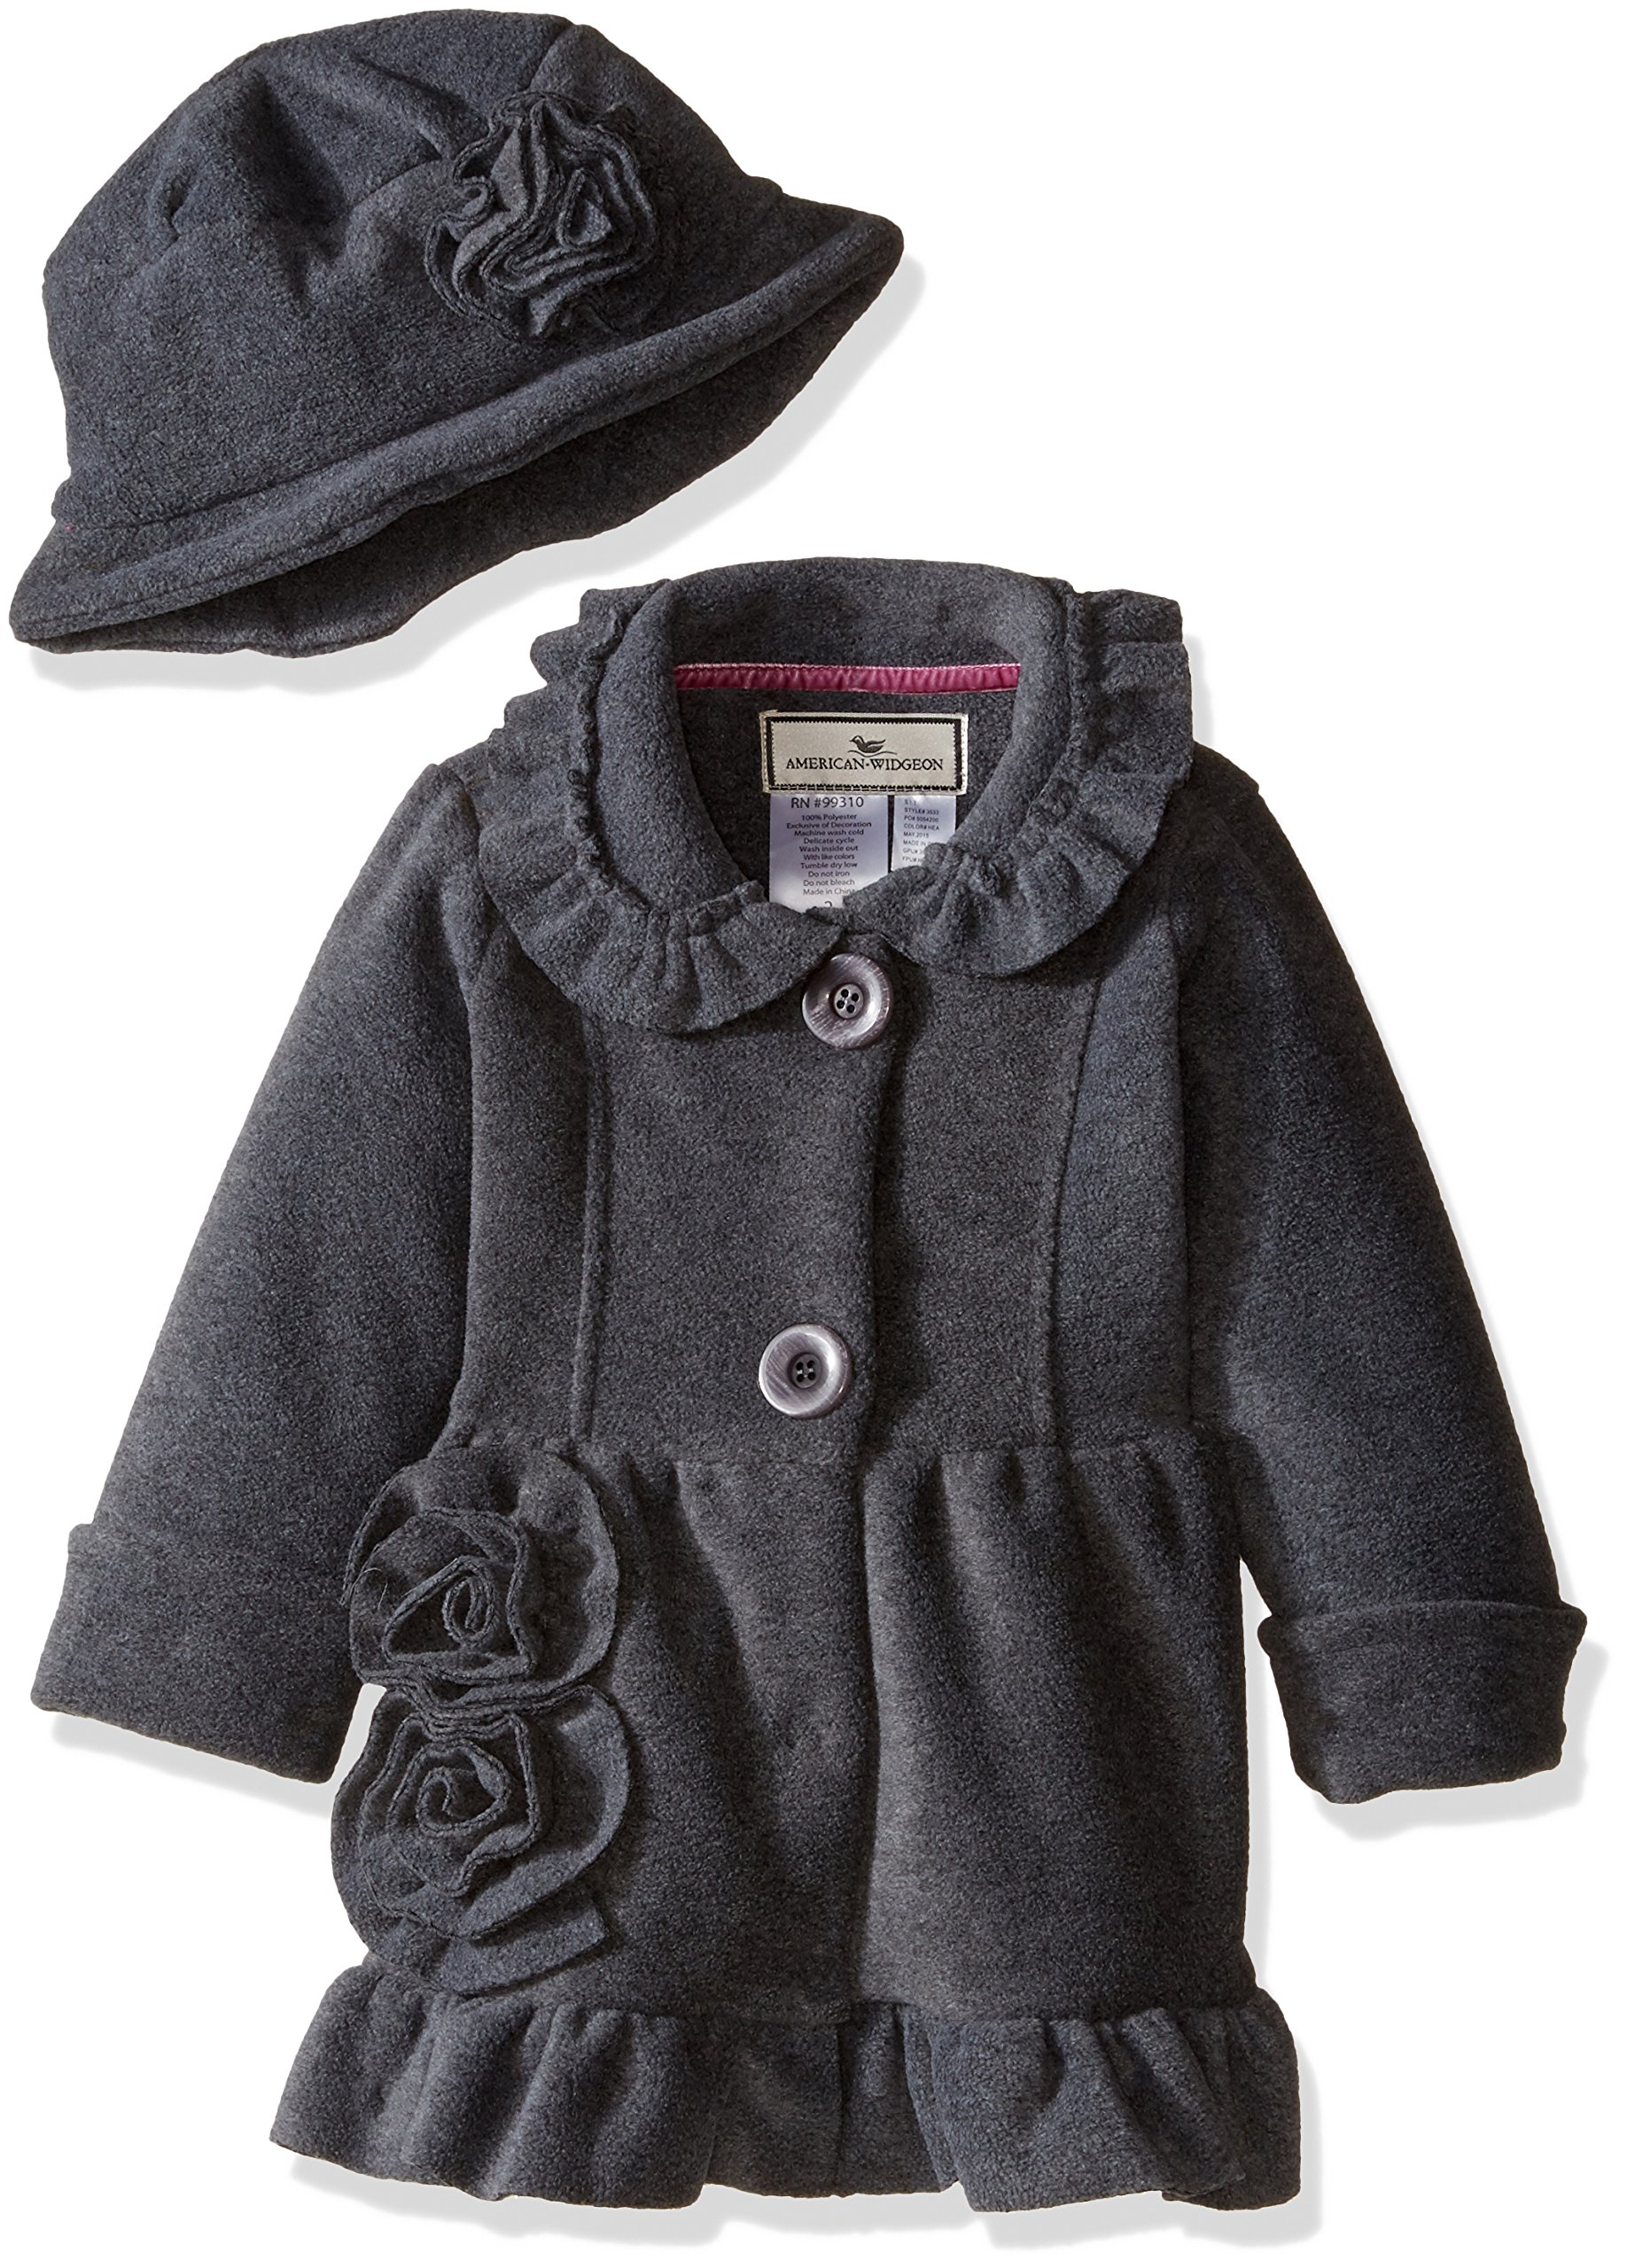 Widgeon Little Girls' Toddler Button Front Bell Coat with Hat, Heather Grey, 2T